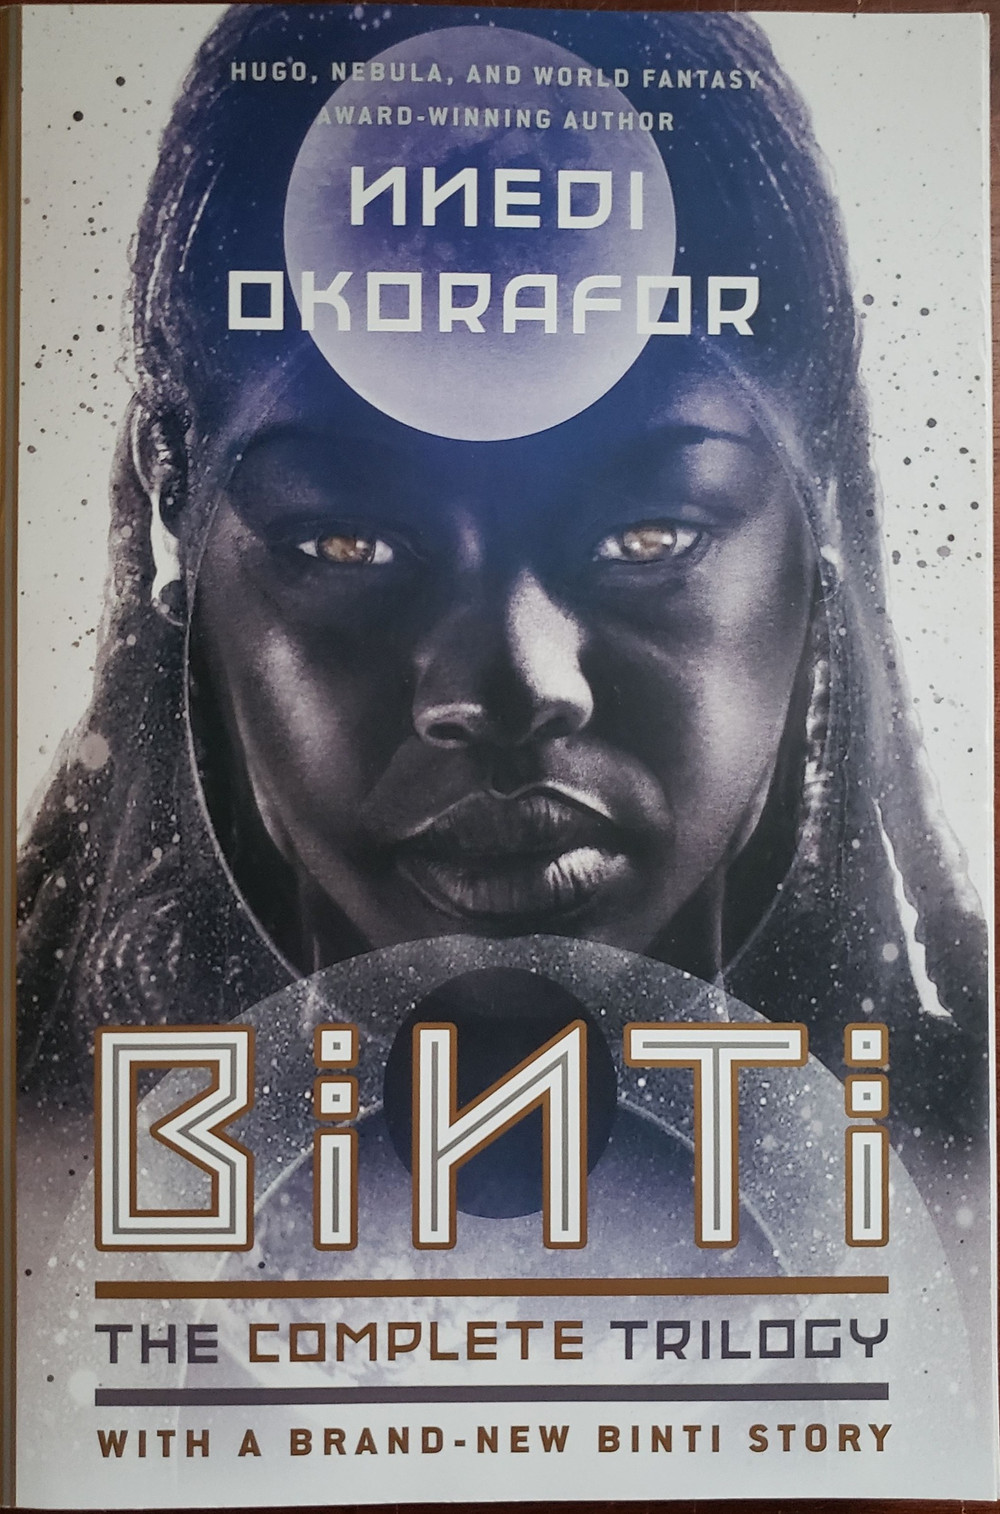 Front image of the book cover for Binti by Nnedi Okorafor.